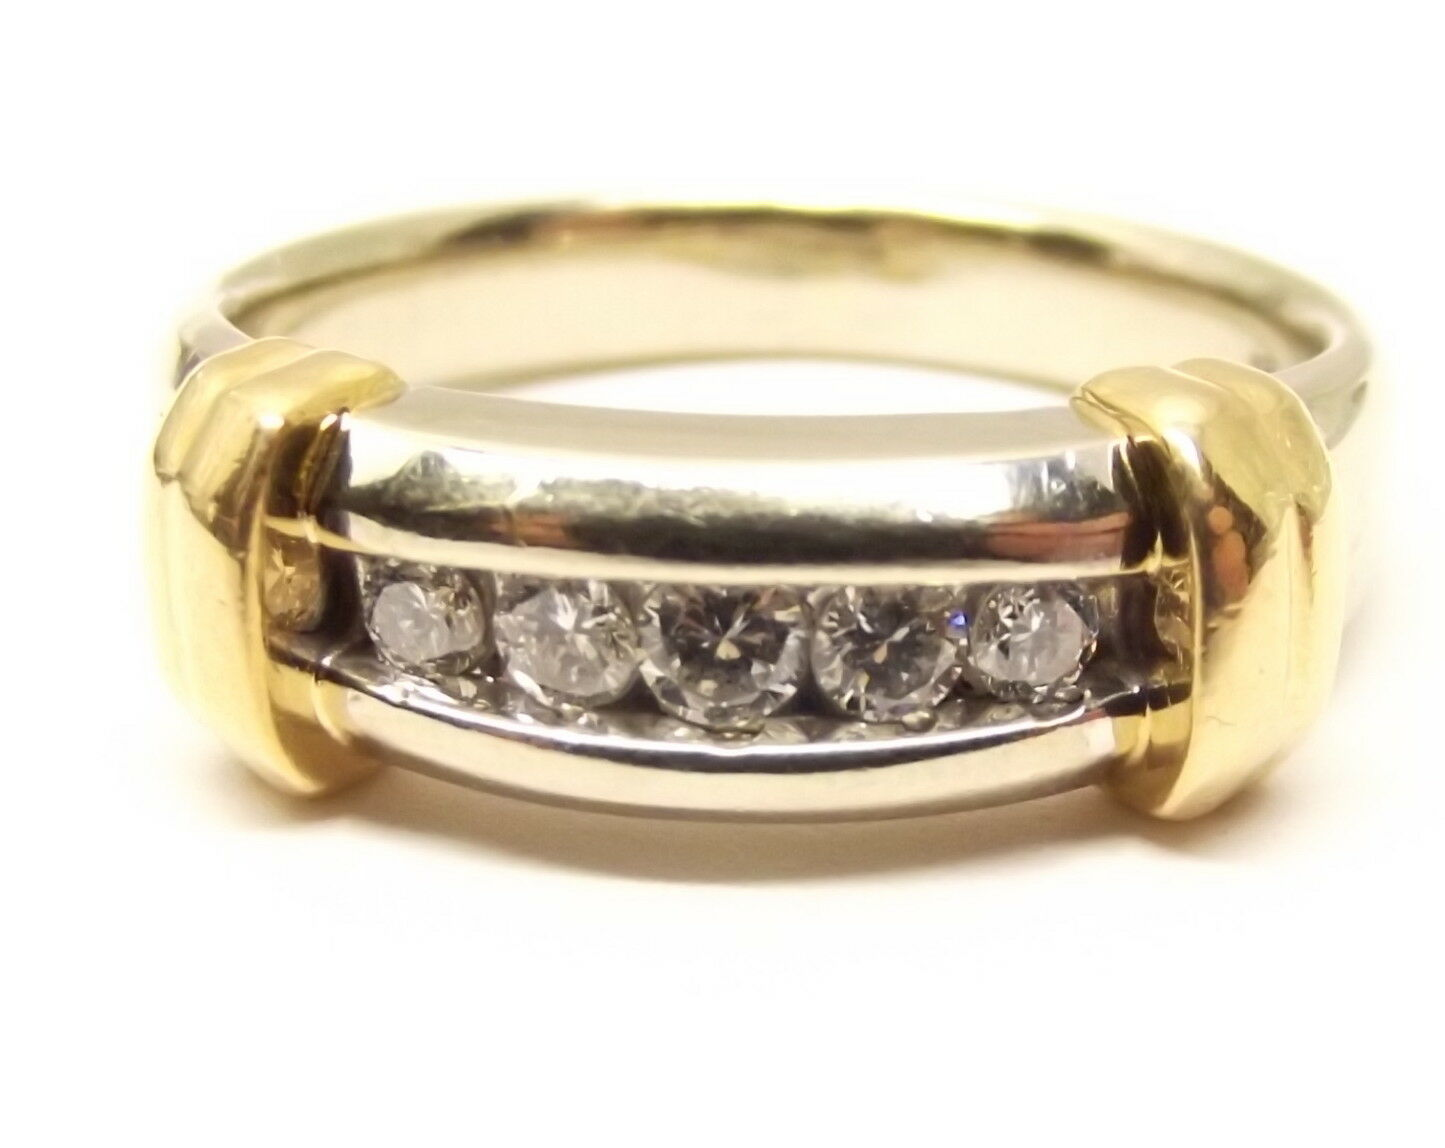 Vtg 14K gold Diamond Ring Sz 8.25 White Yellow 2 Tone Mens Wedding .42 Carat TCW